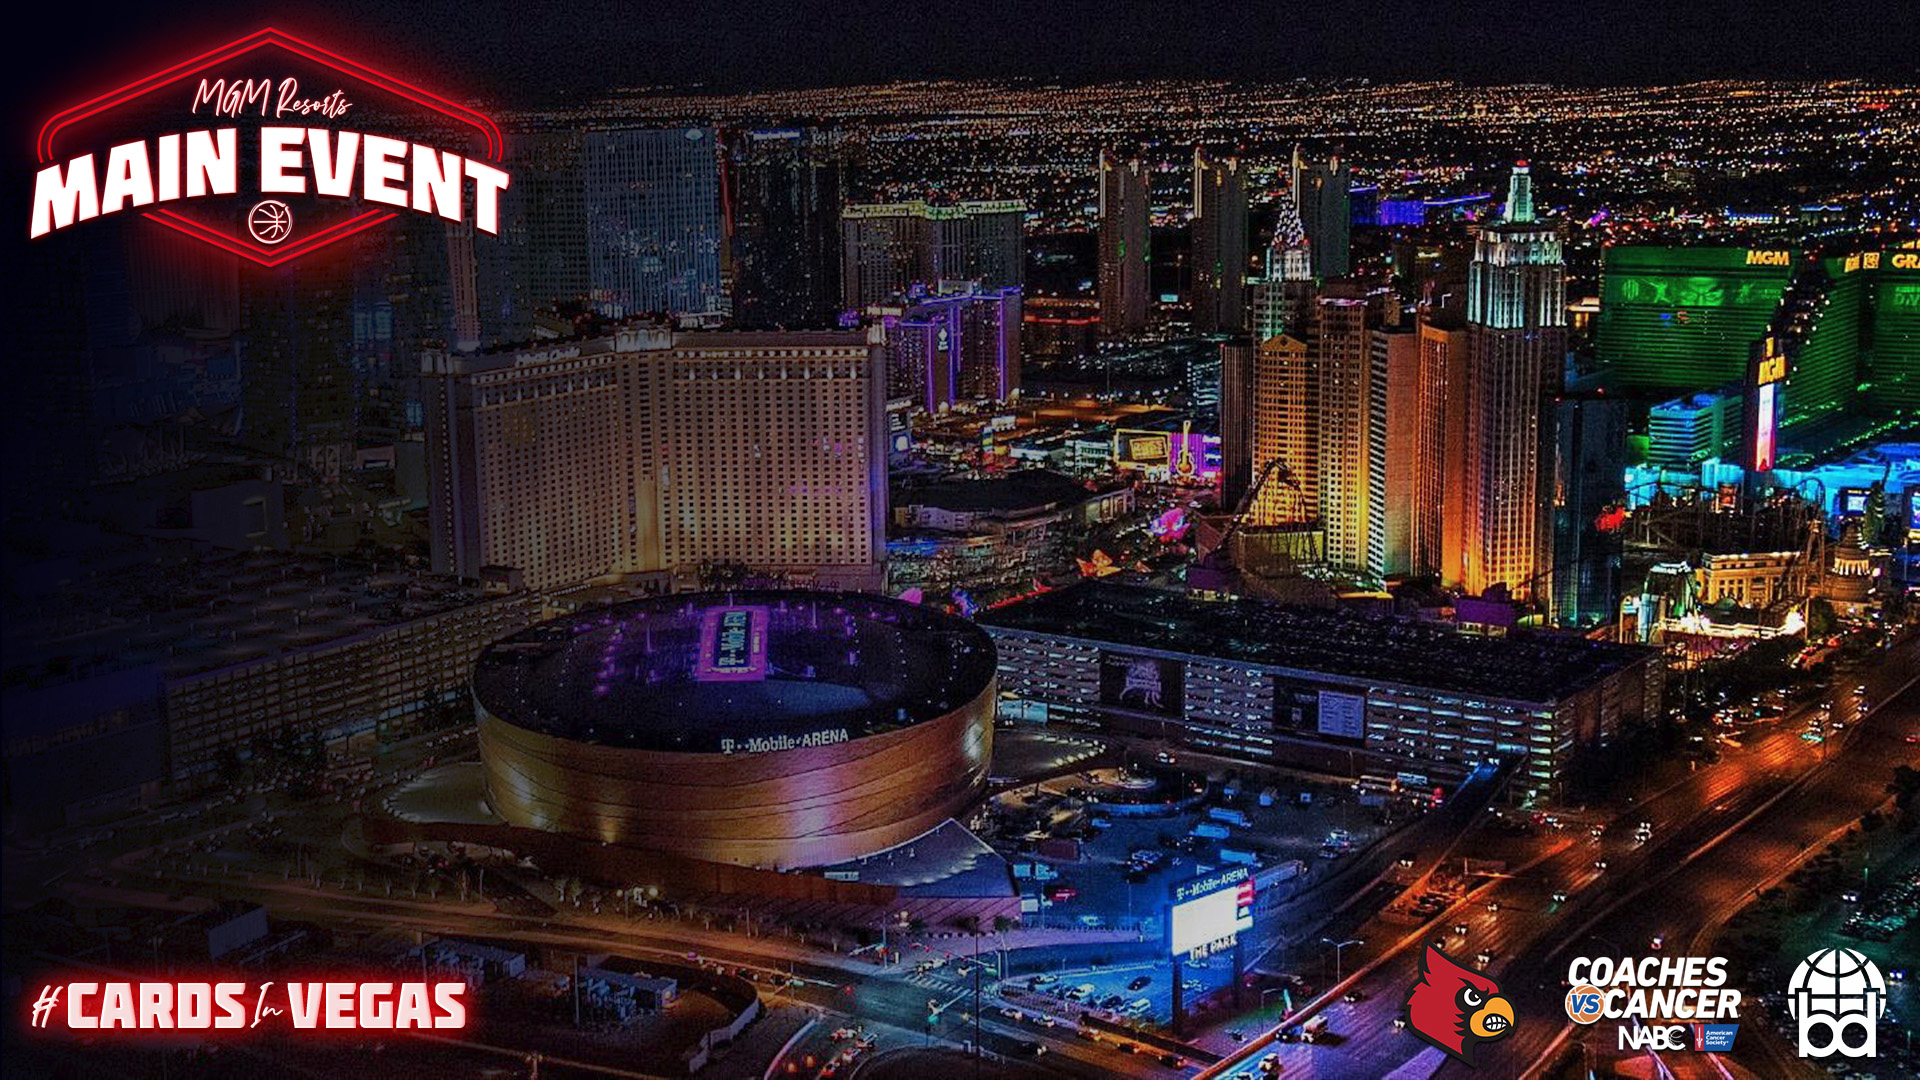 Cards To Play In 2020 Mgm Resorts Main Event In Las Vegas